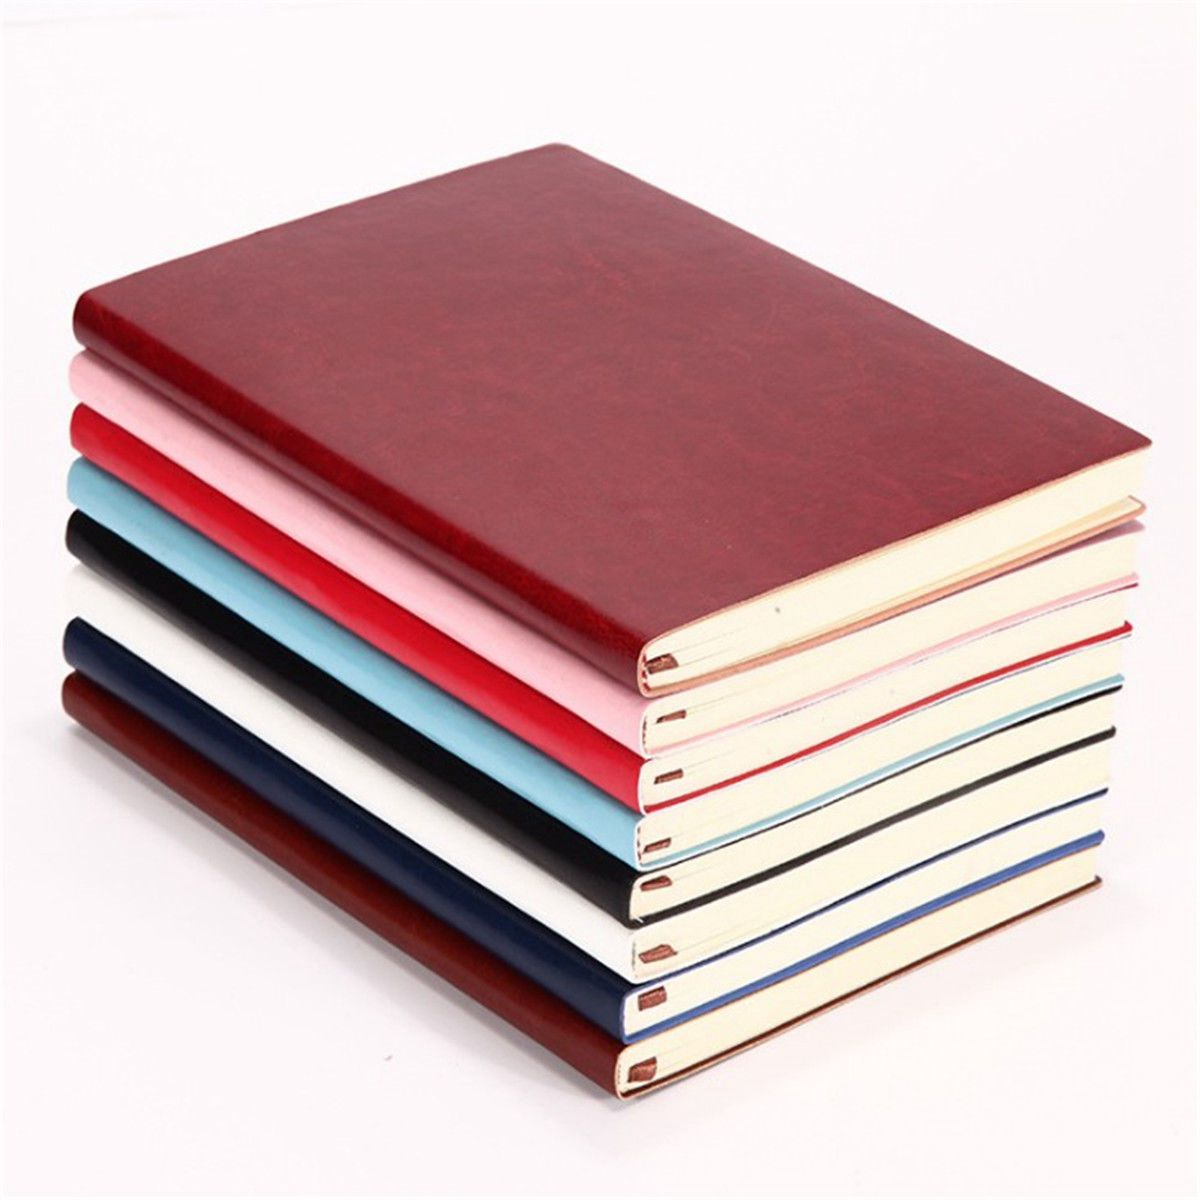 6 Color Random Soft Cover PU Leather Notebook Writing Journal 100 Page Lined Diary Book микроволновая печь свч bbk 20 mws 710 m w белый